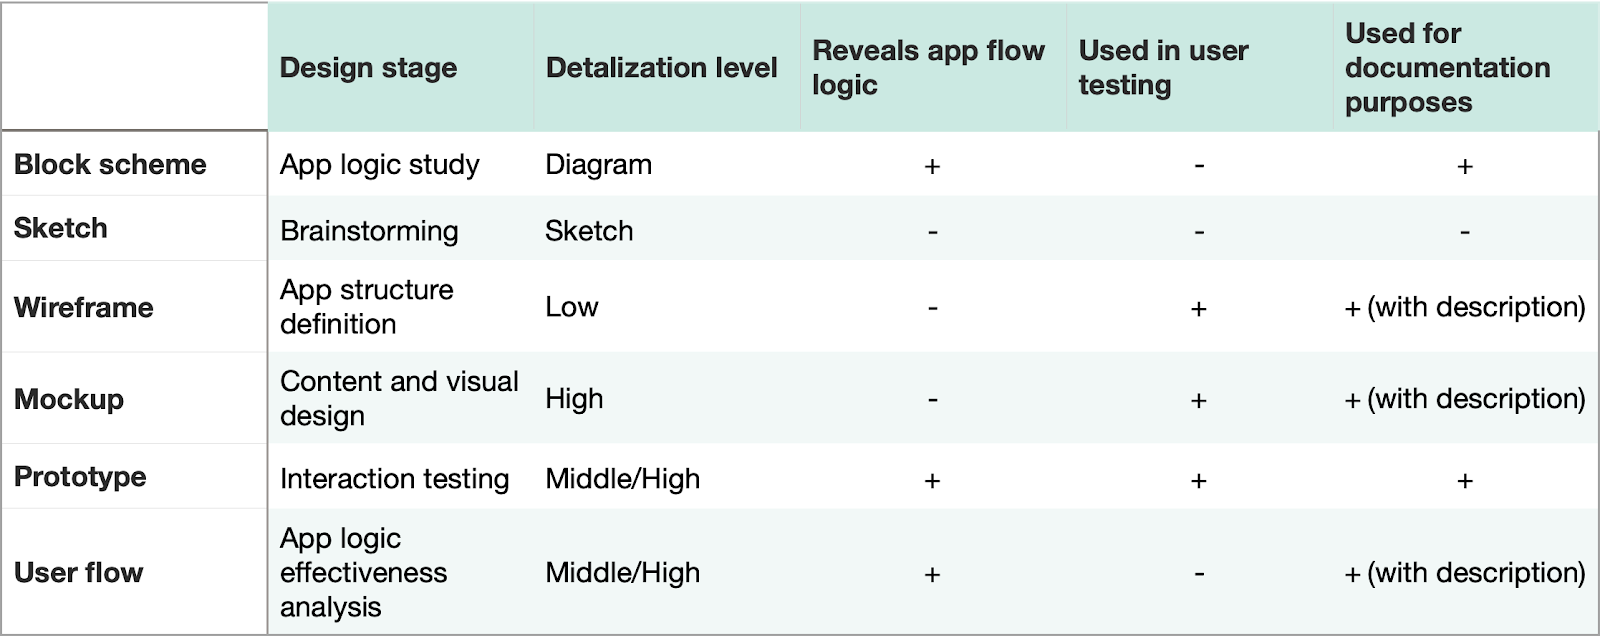 Used in user testing Block scheme Sketch Wireframe Mockup Prototype User flow Design stage App logic study Brainstorming App structure definition Content and visual design Interaction testing App logic effectiveness analysis Reveals app flow Detalization level logic Diagram Sketch Low High Middle/High Middle/High Used for documentation purposes + (with description) + (with description) + (with description)